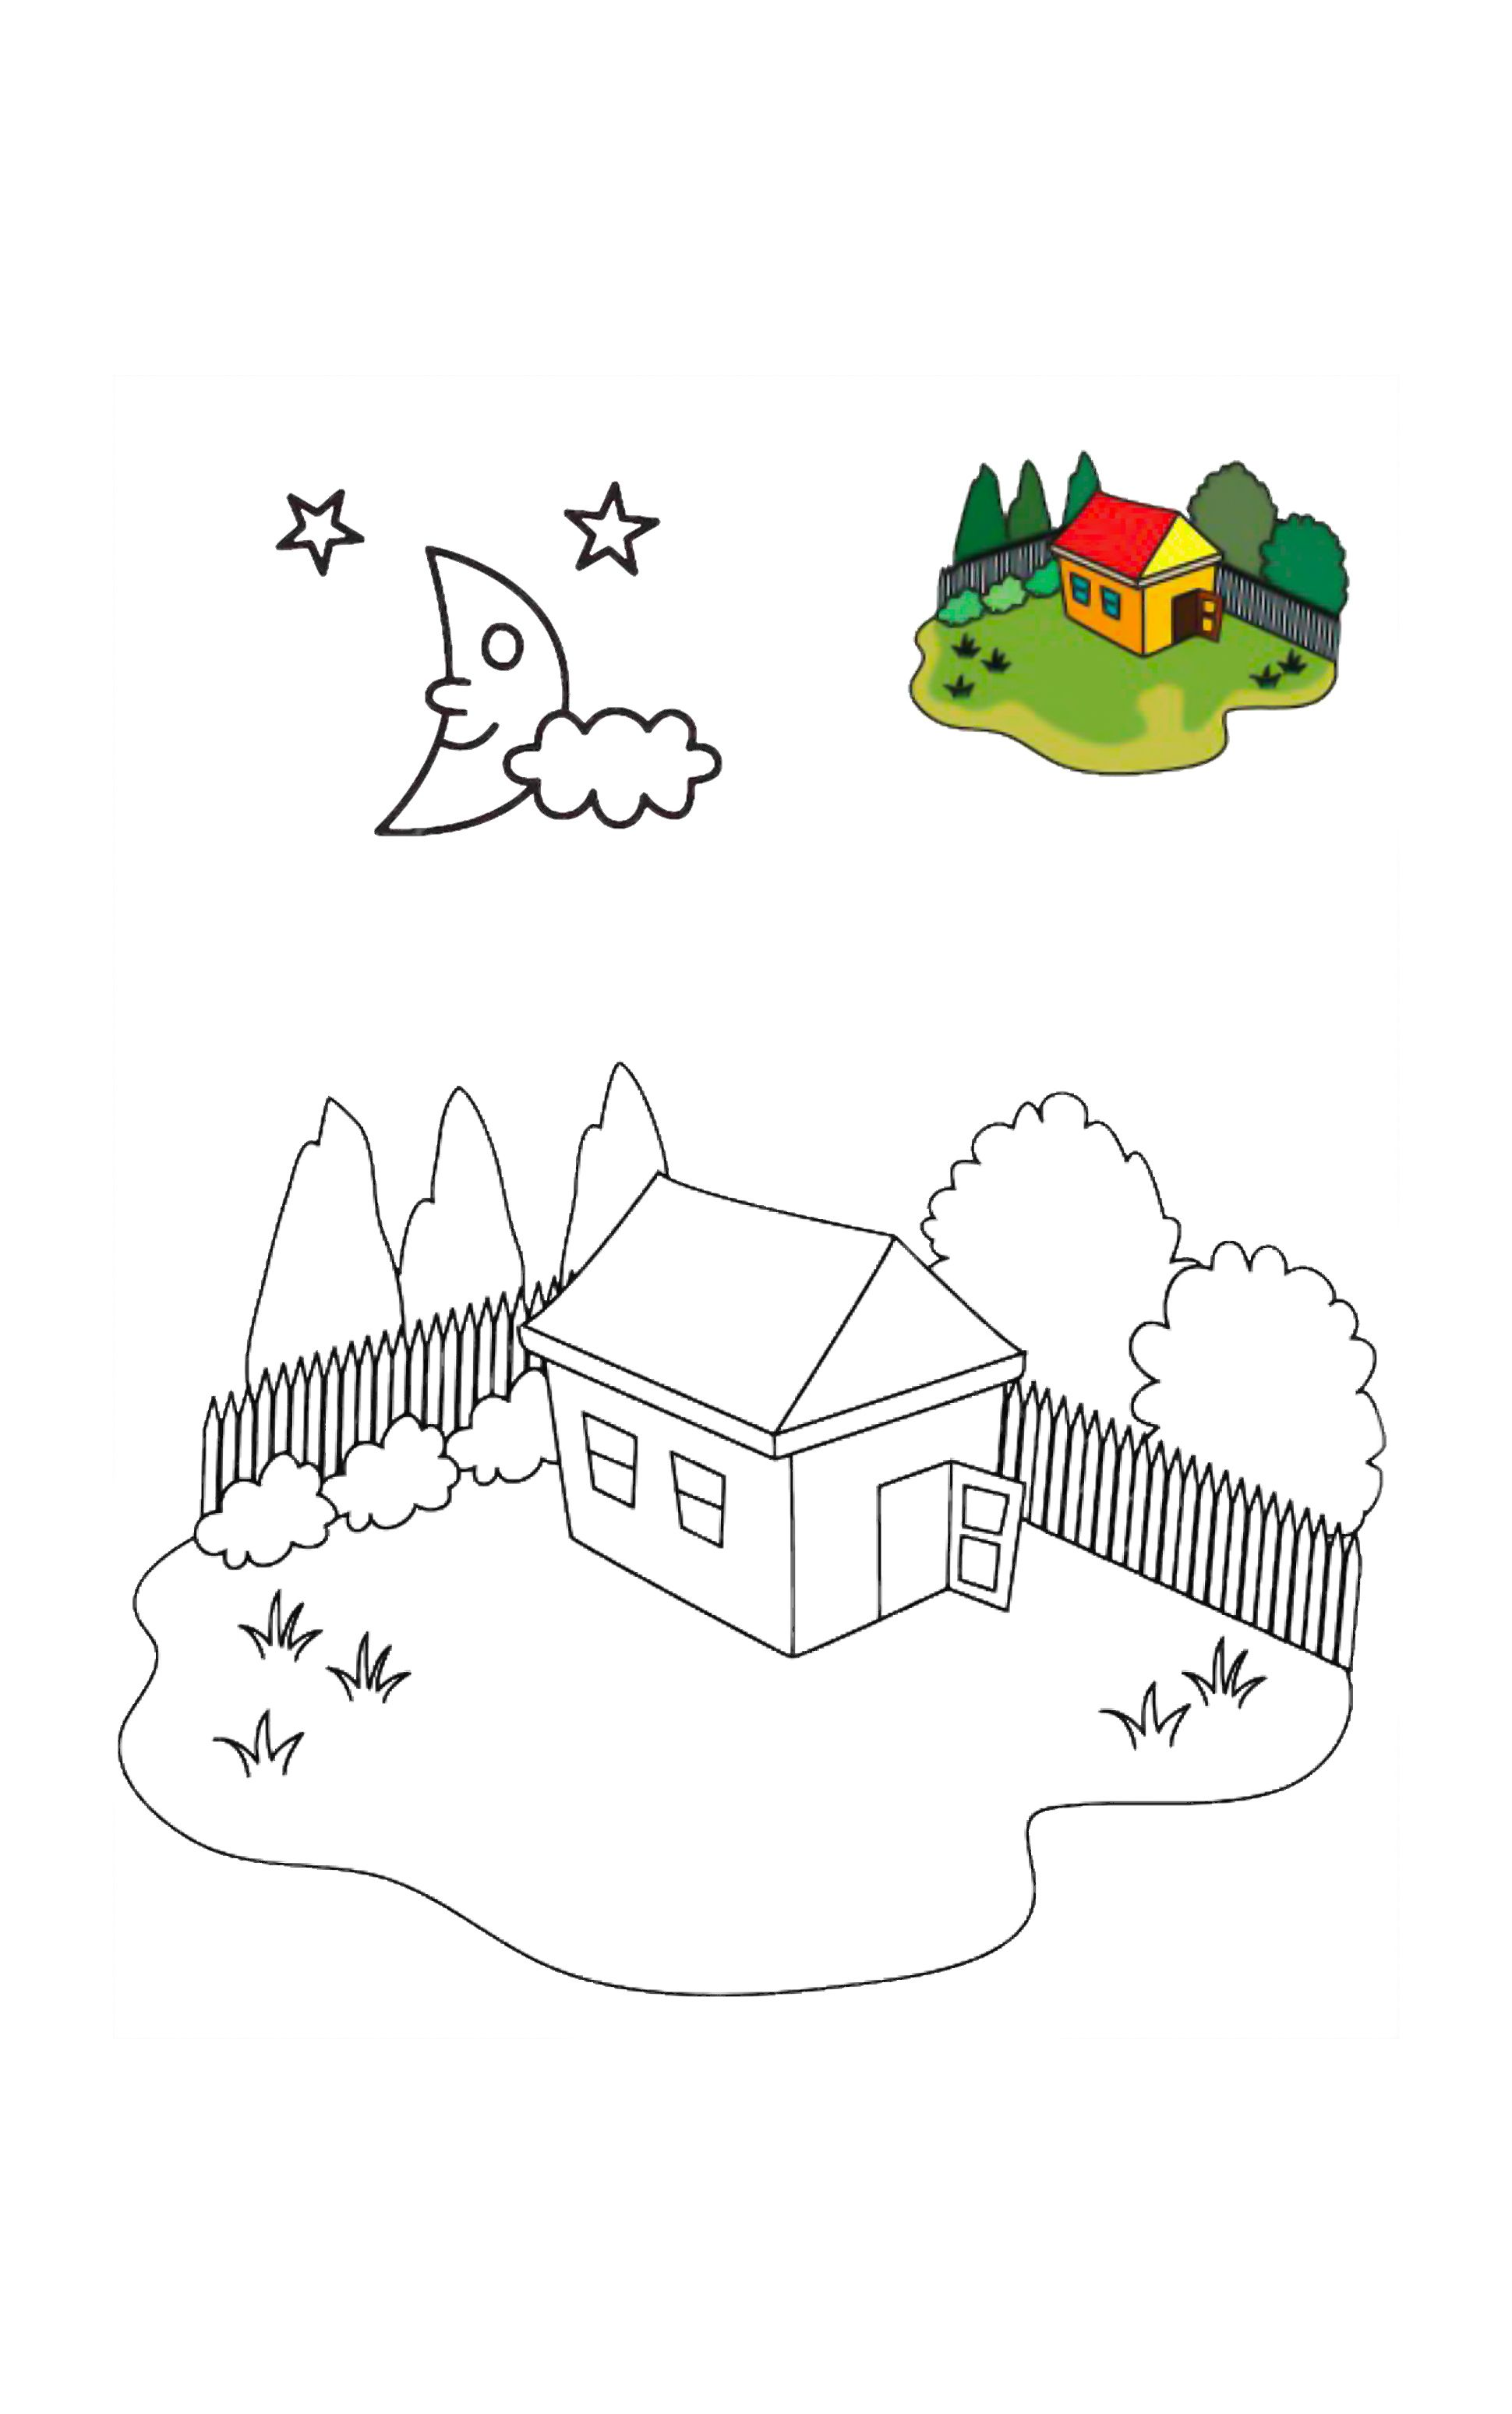 50 Coloring Pages For Toddlers Cute Coloring Pages Coloring Pages Free Coloring Pages